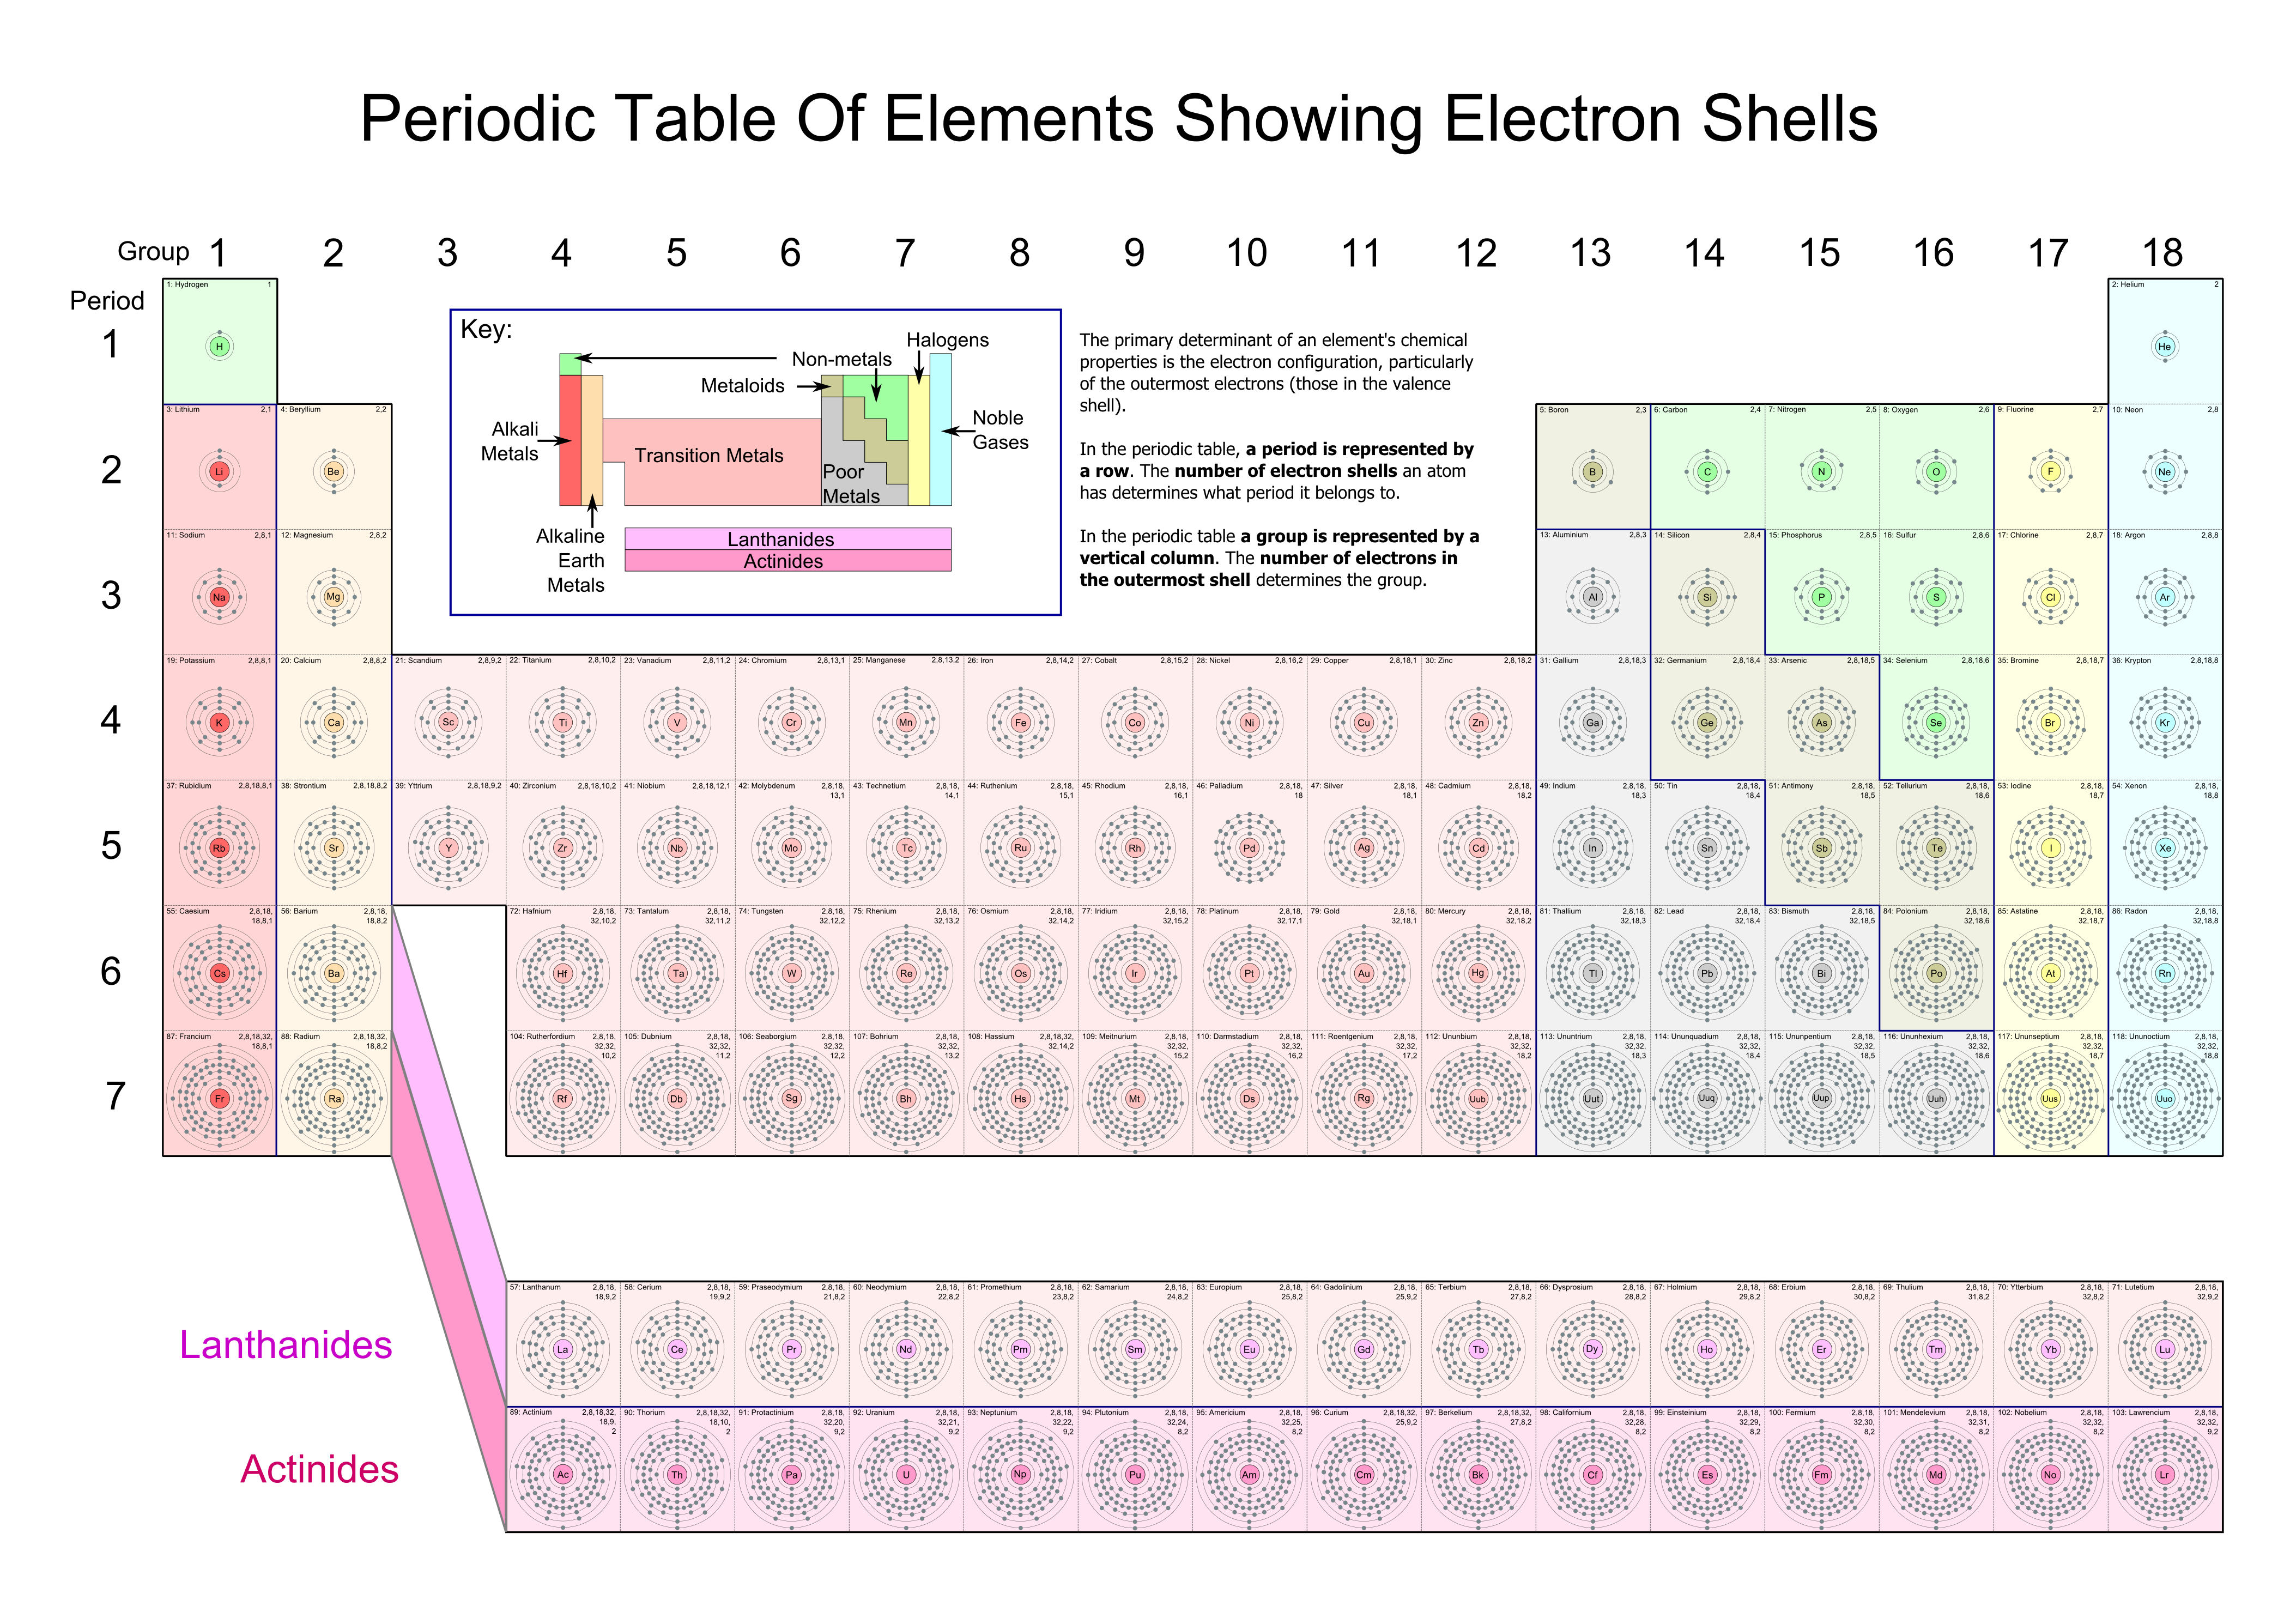 Even The Periodic Table Of Elements And The Basis